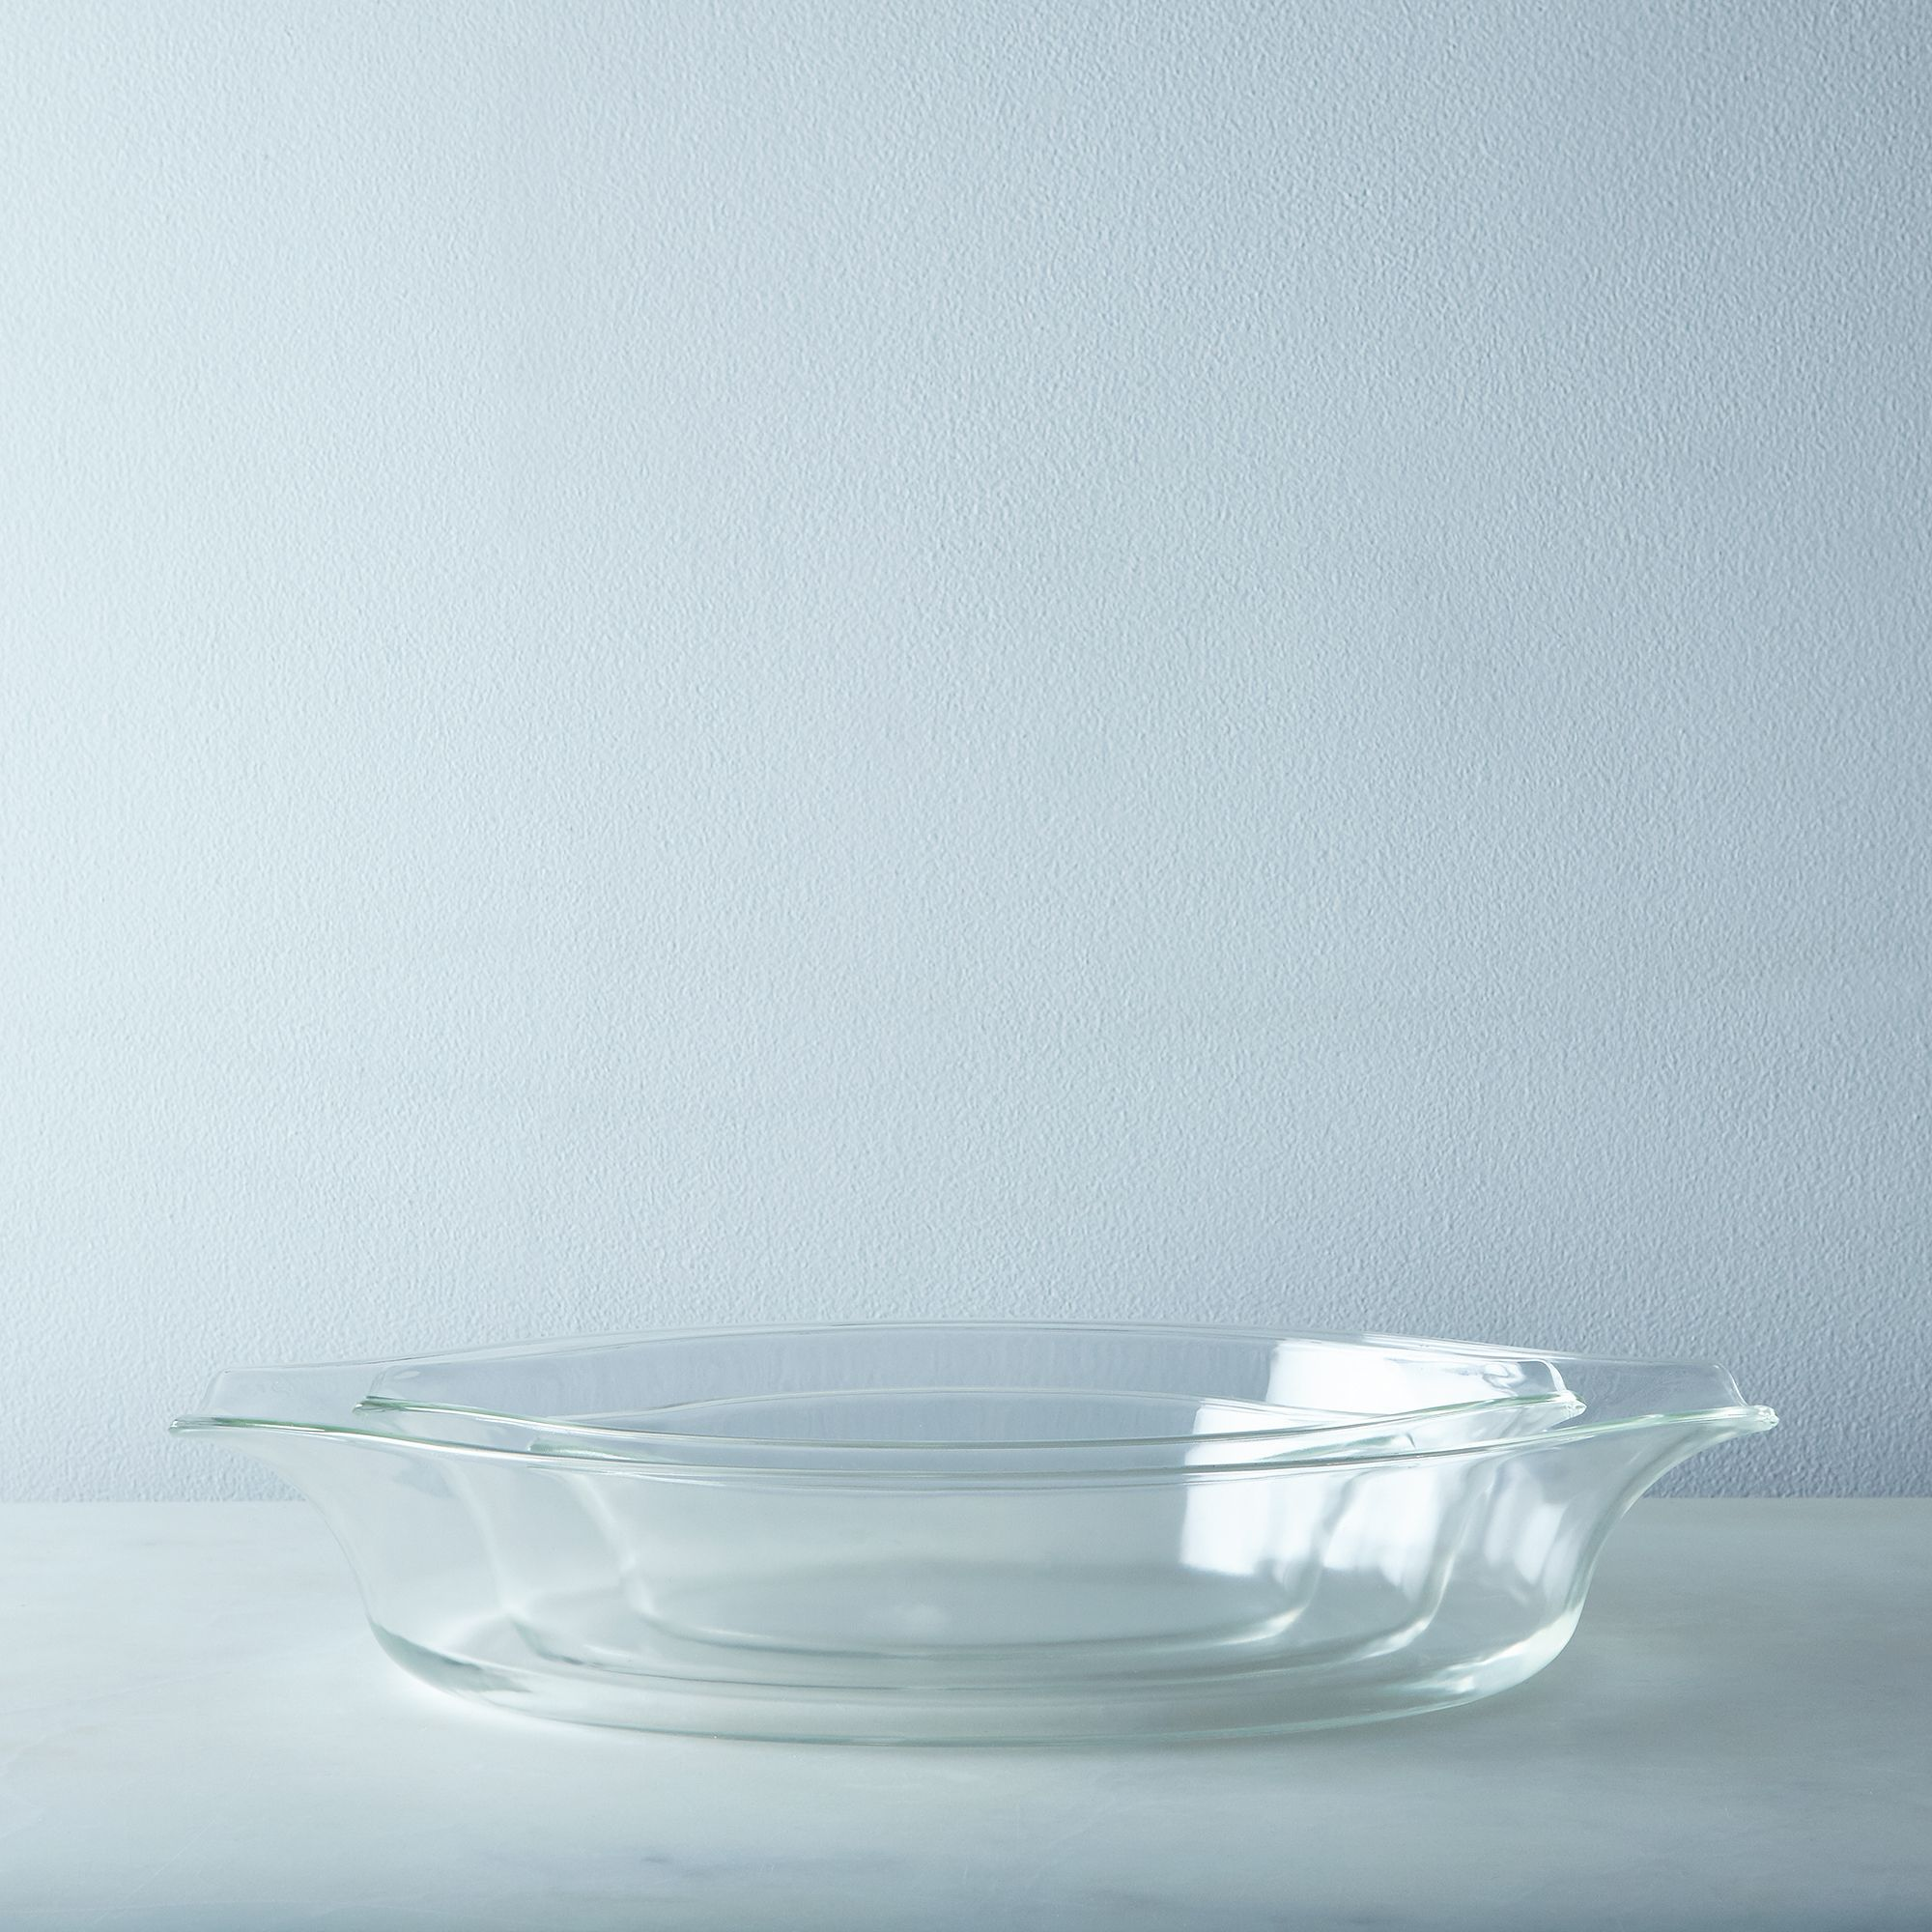 Jenaer Glas Nesting Casserole & Baking Dishes - Set of 3